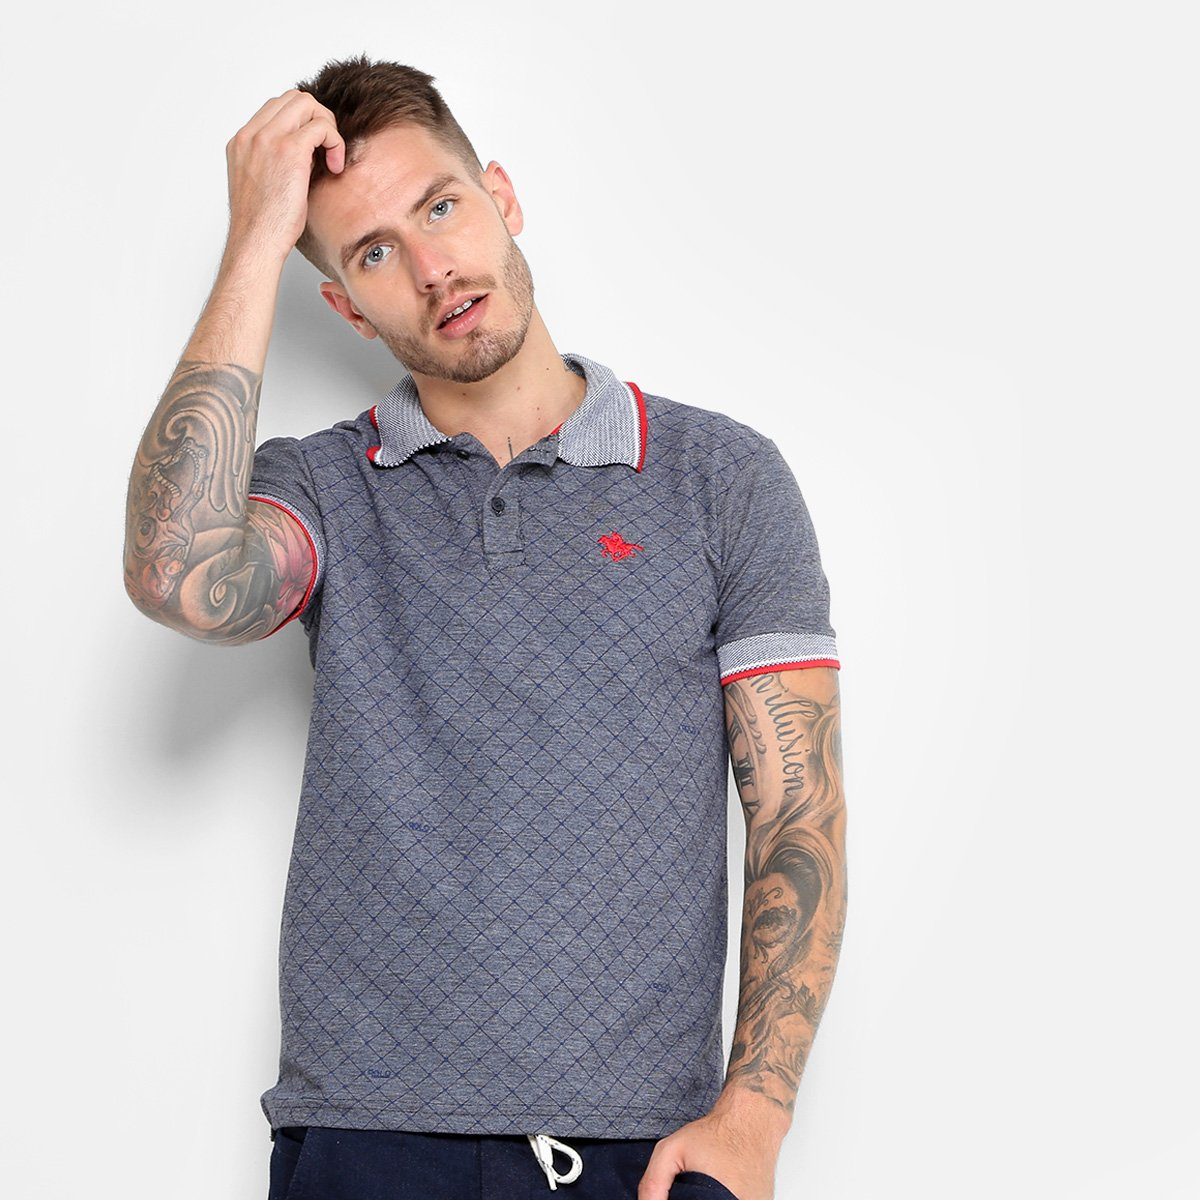 eb4be95436 Camisa Polo RG 518 Piquet Indigo Full Print Bordado Masculina